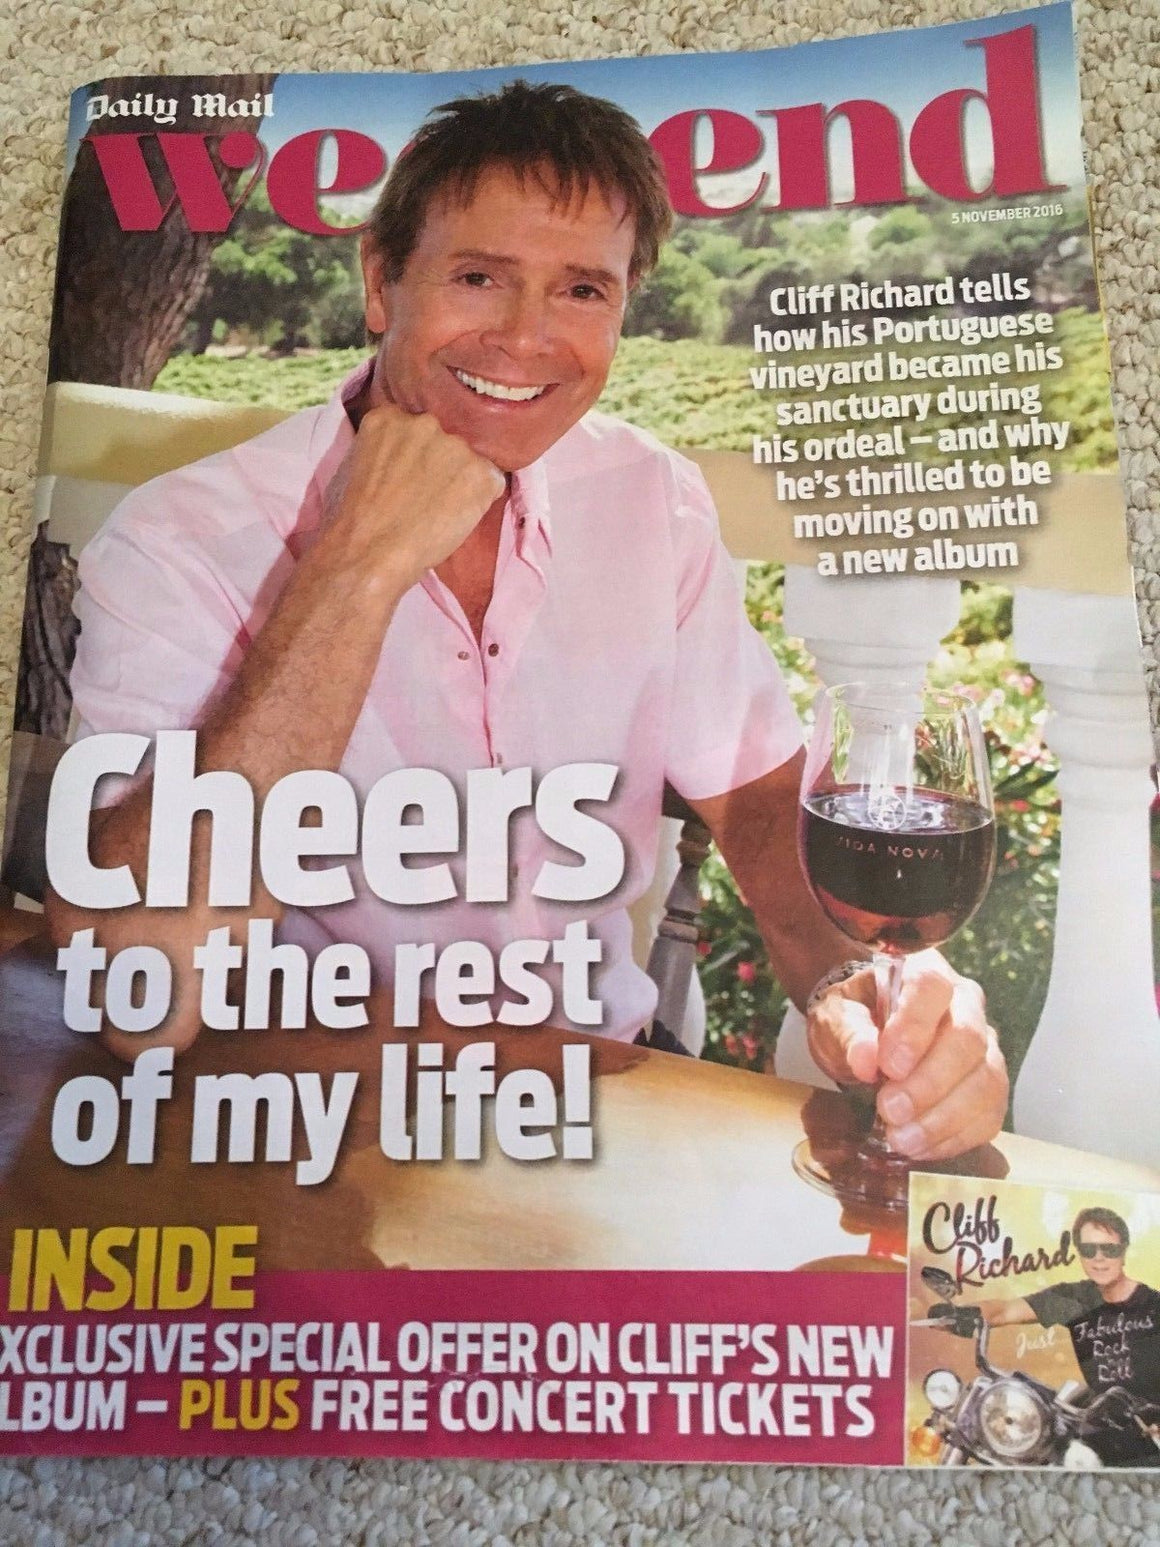 CLIFF RICHARD interview Tom Riley Jim Sturgess UK Weekend Magazine November 2016